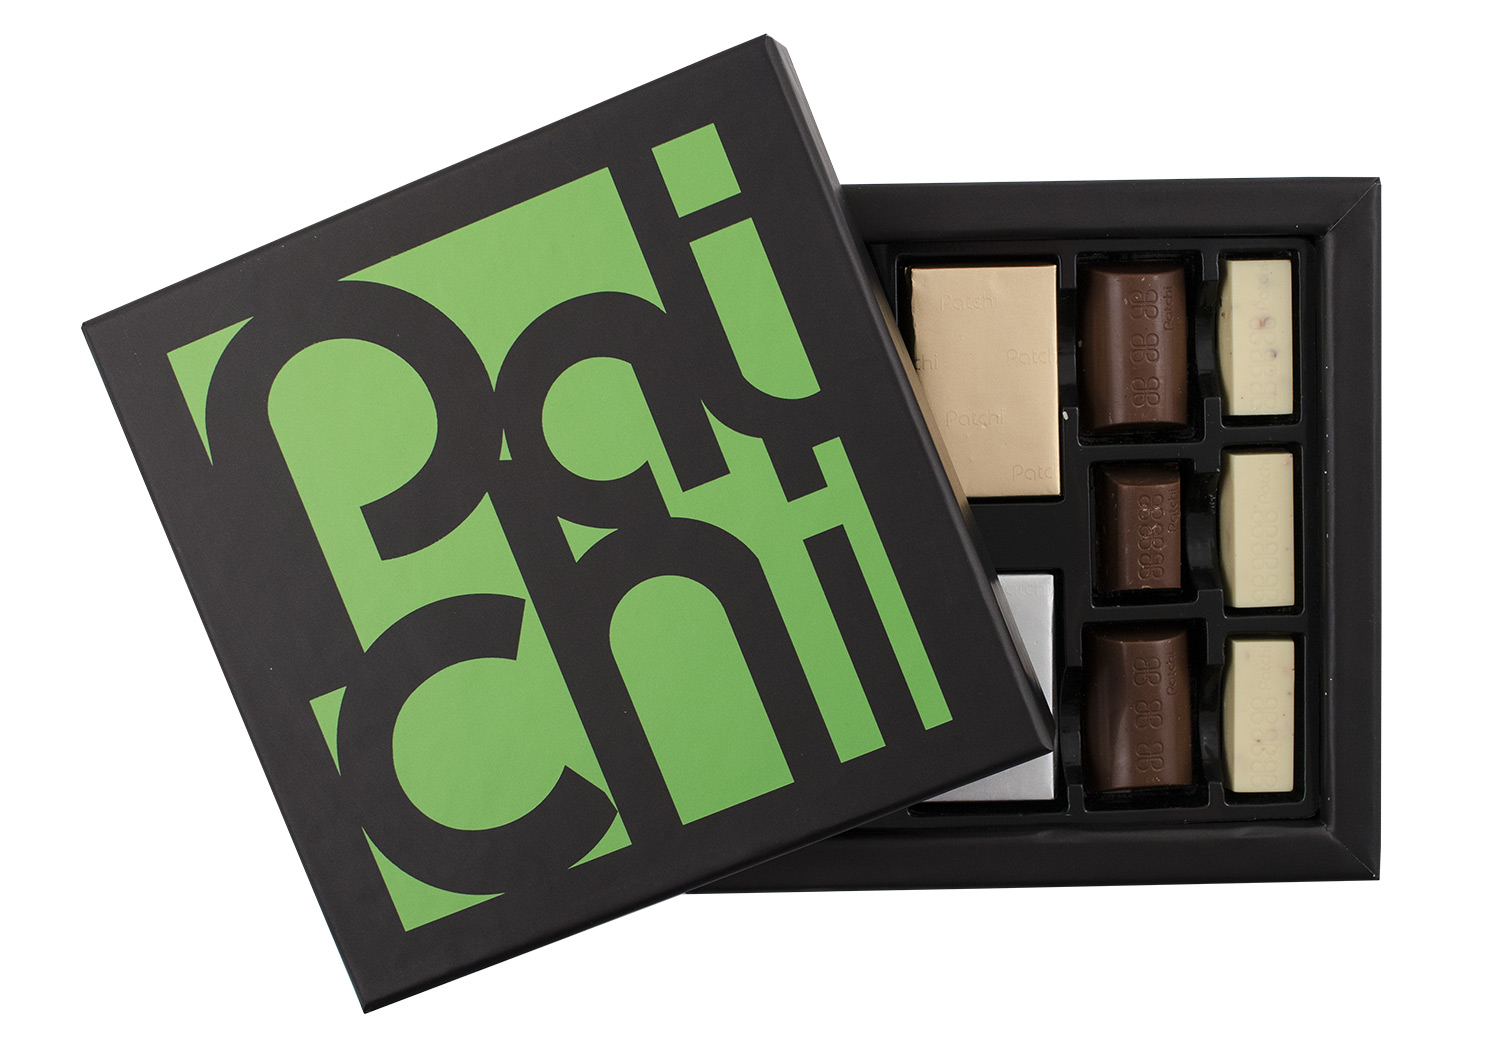 Patchi Elite Green Collection